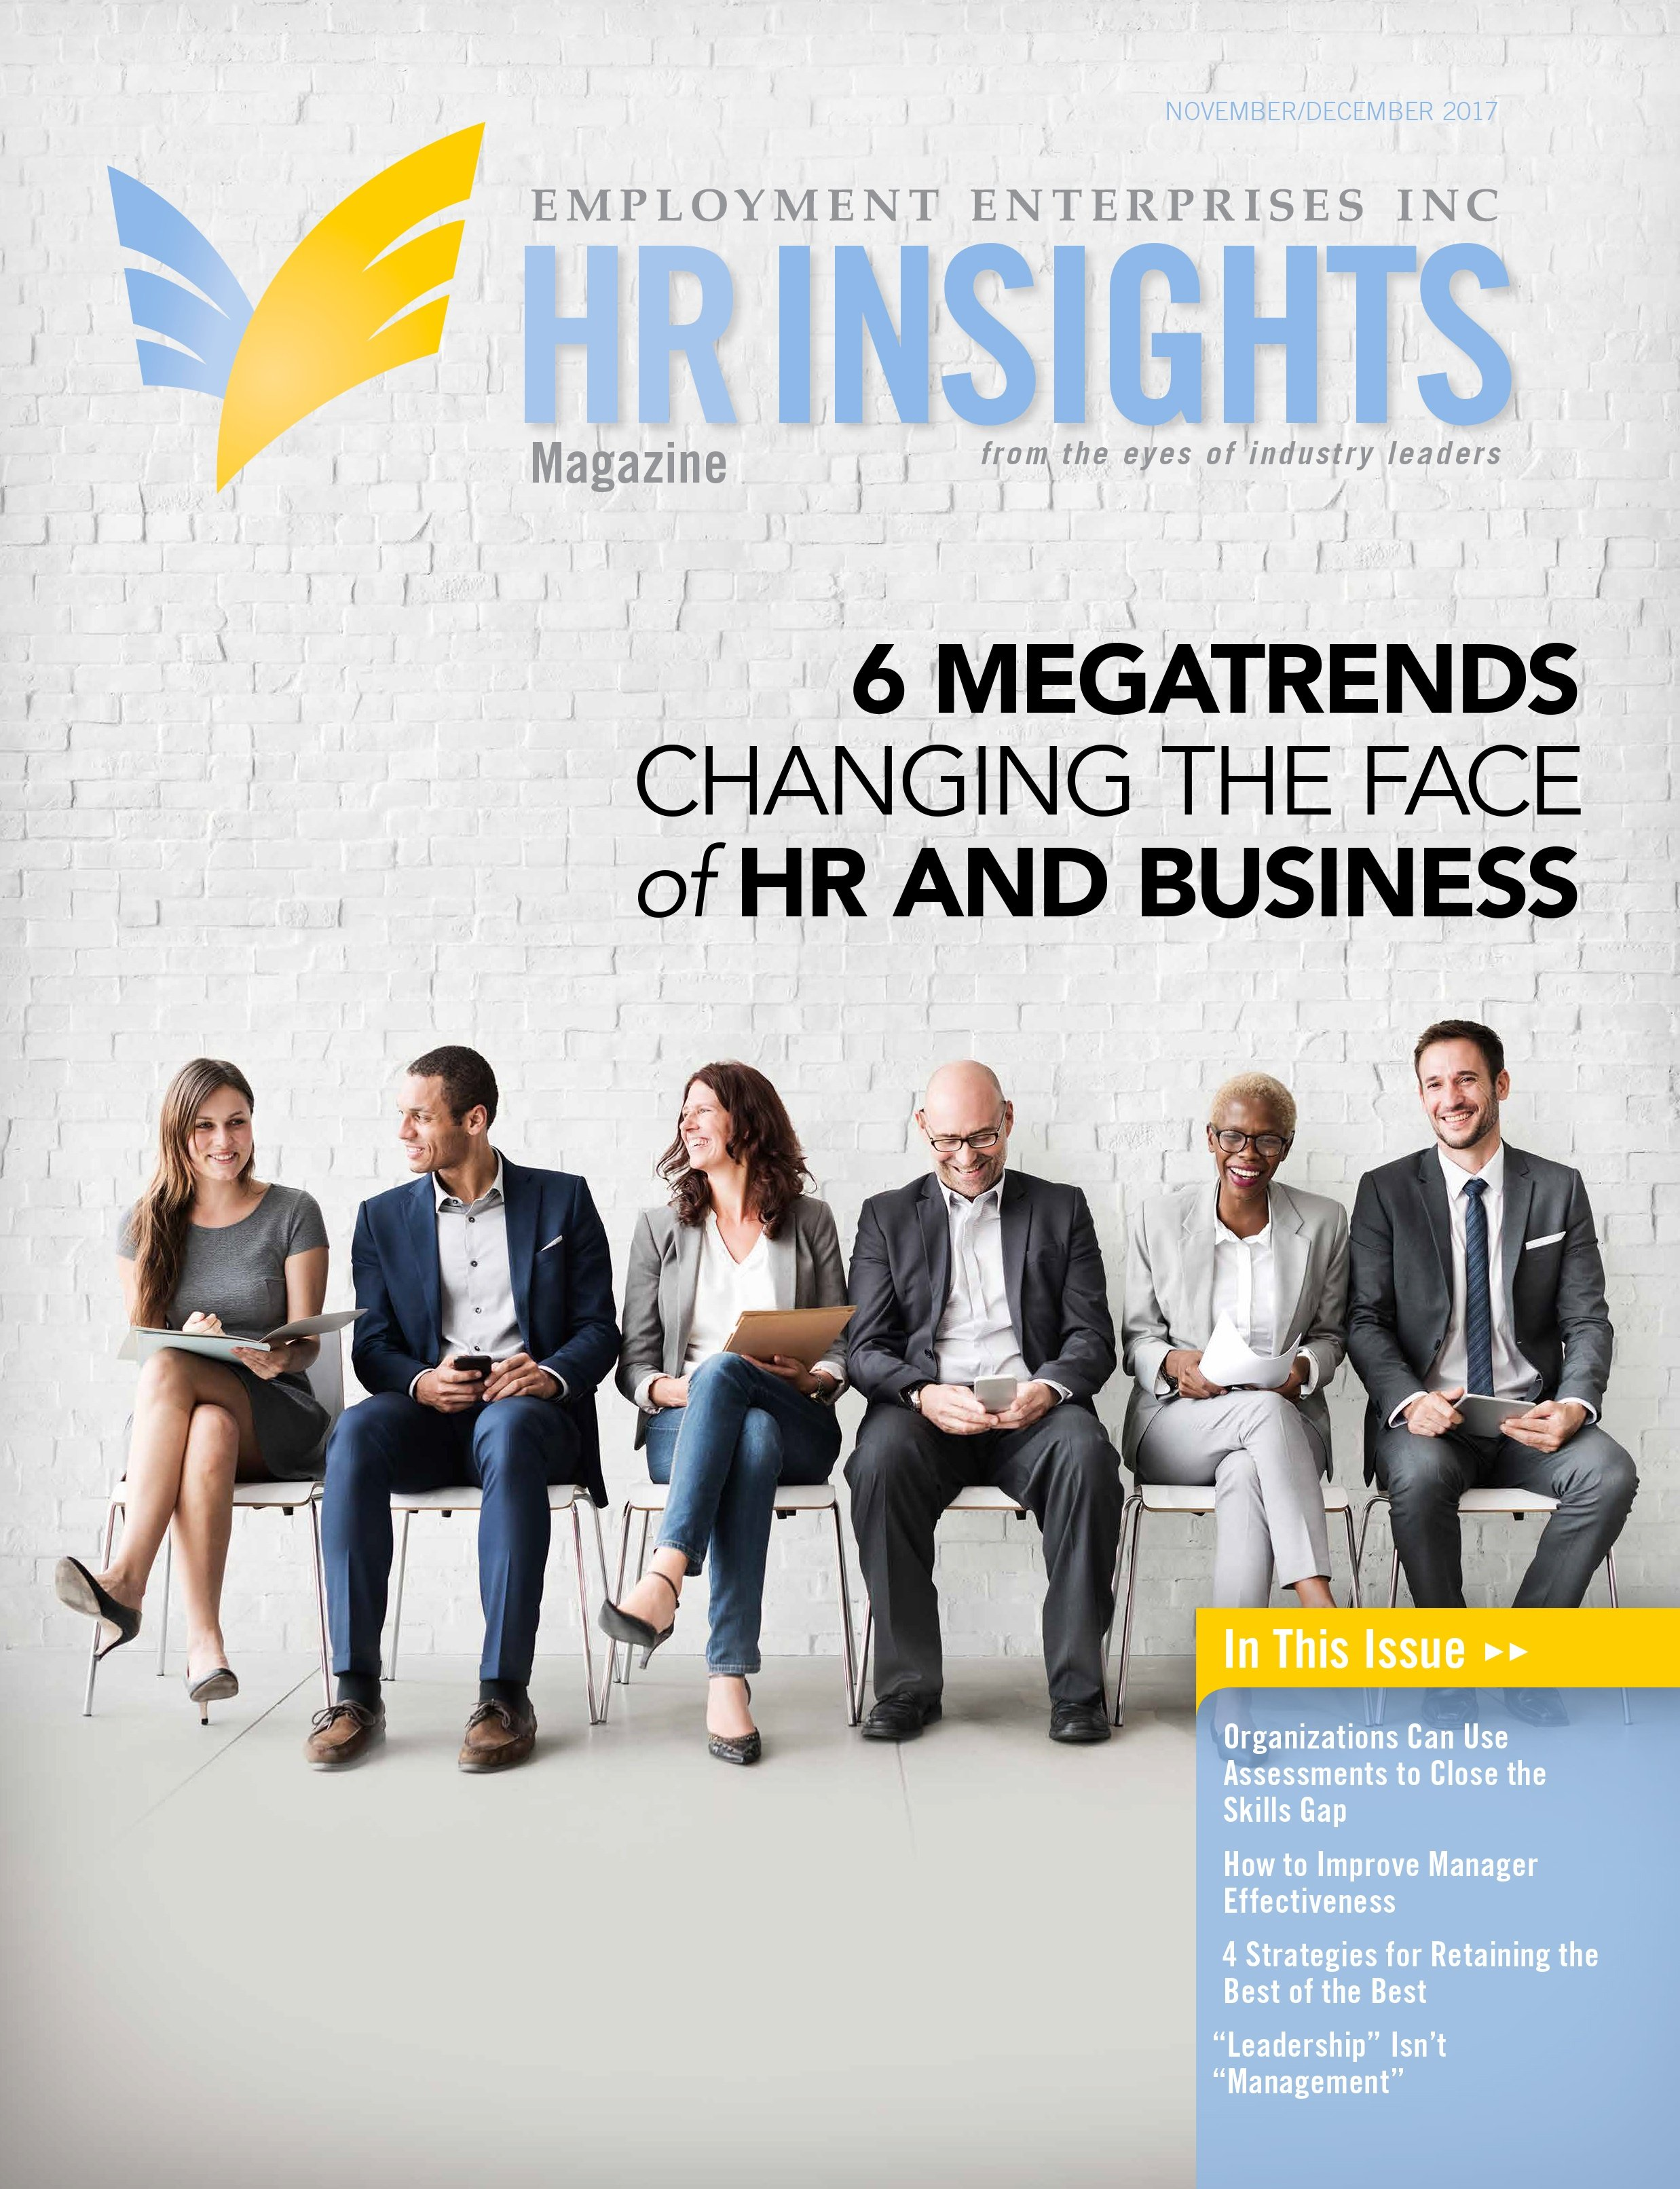 HR-Insights-Nov-17-1.jpg